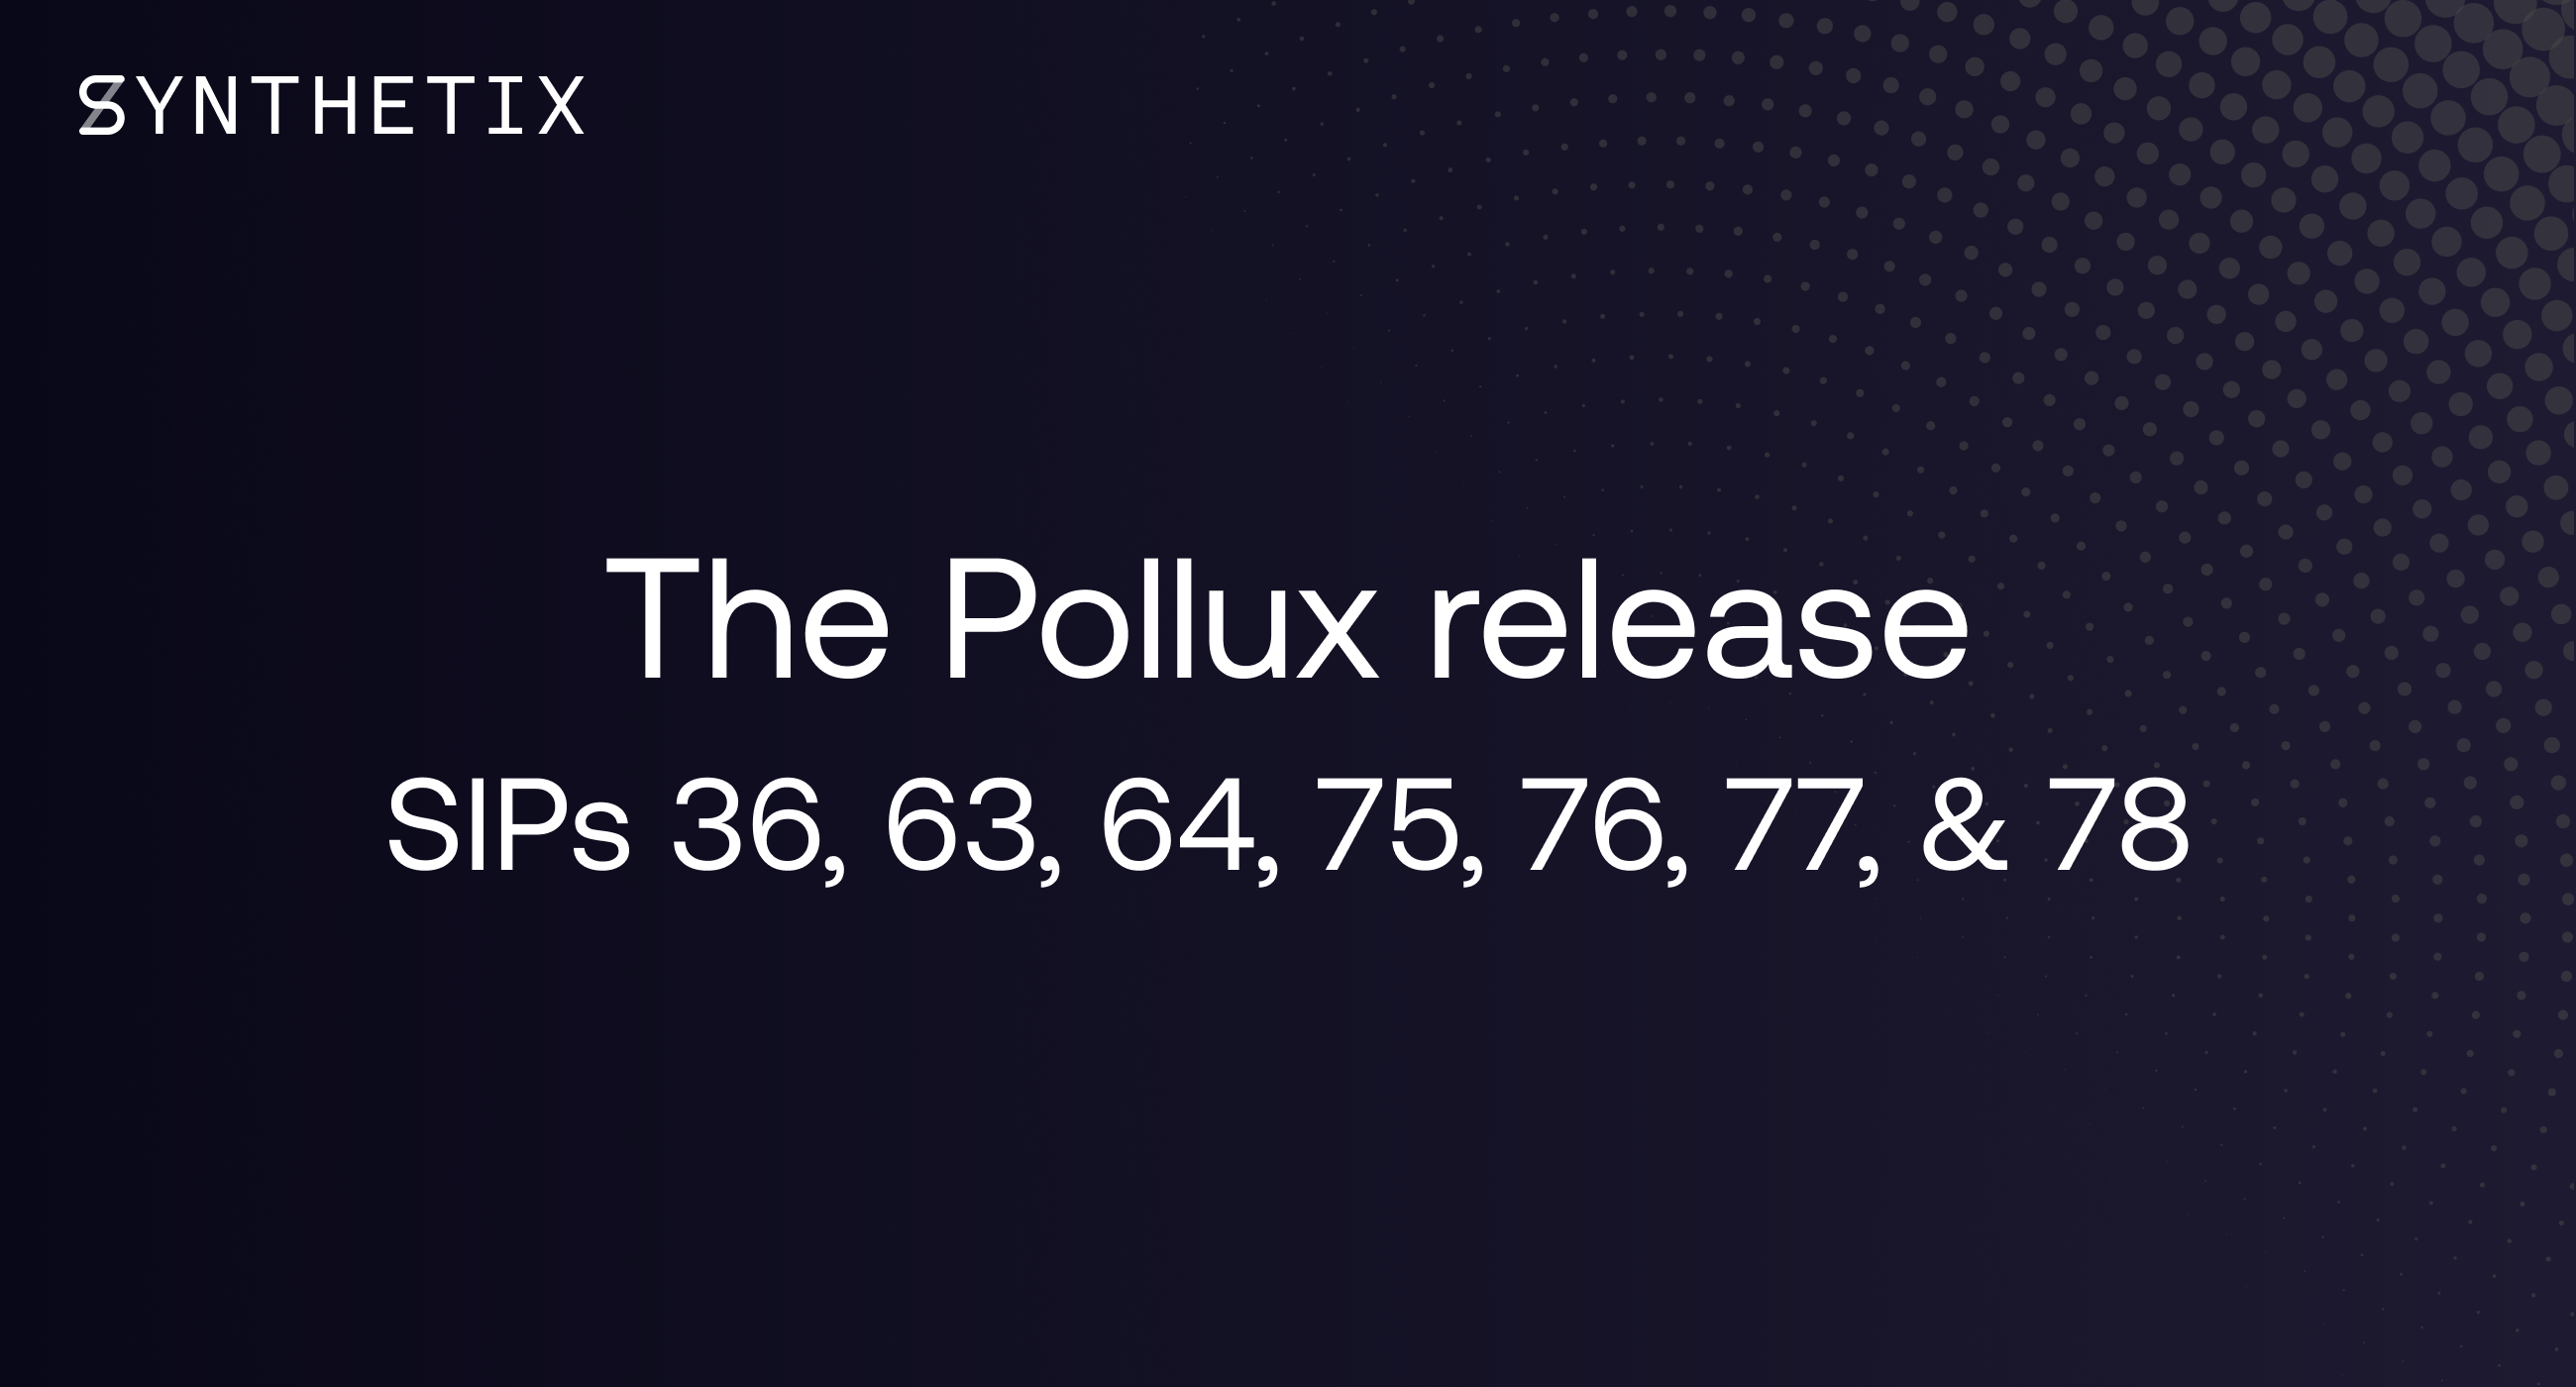 The Pollux release